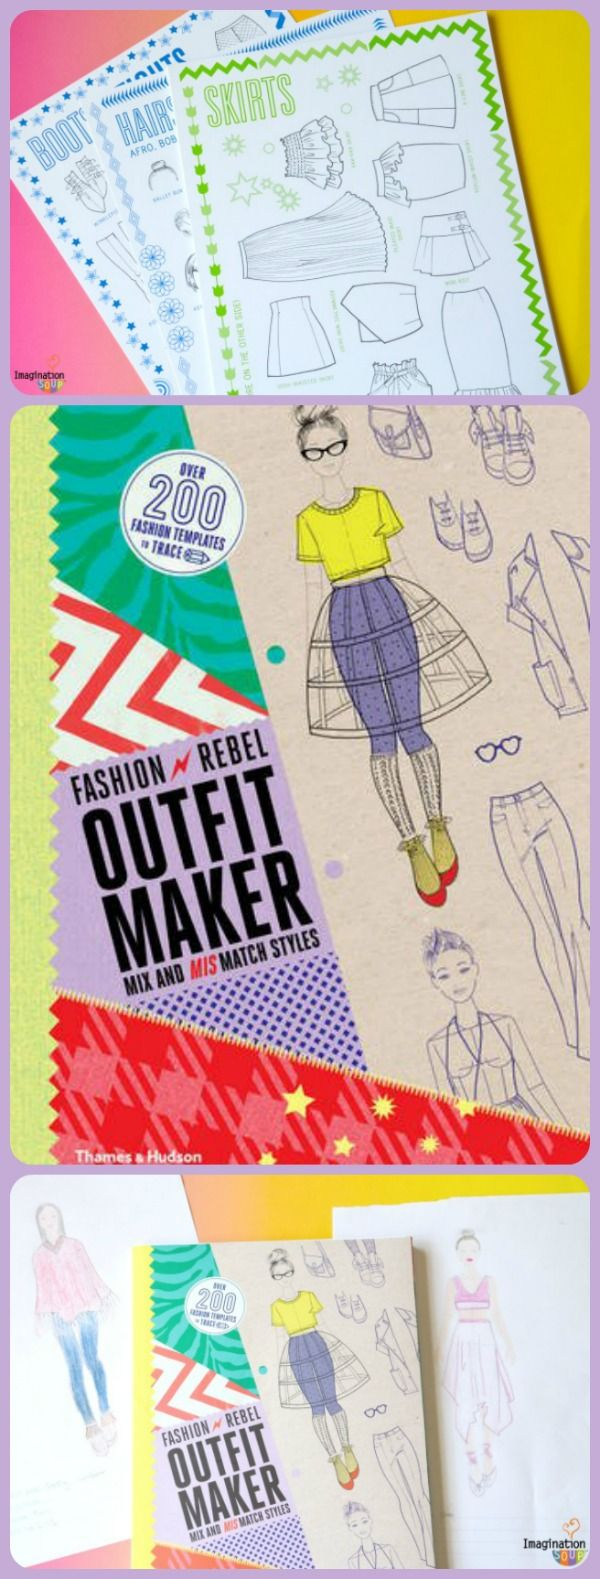 Gift Idea for Tweens and Teens Fashion Rebel Outfit Maker - my 13-year old daughter LOVES this book!